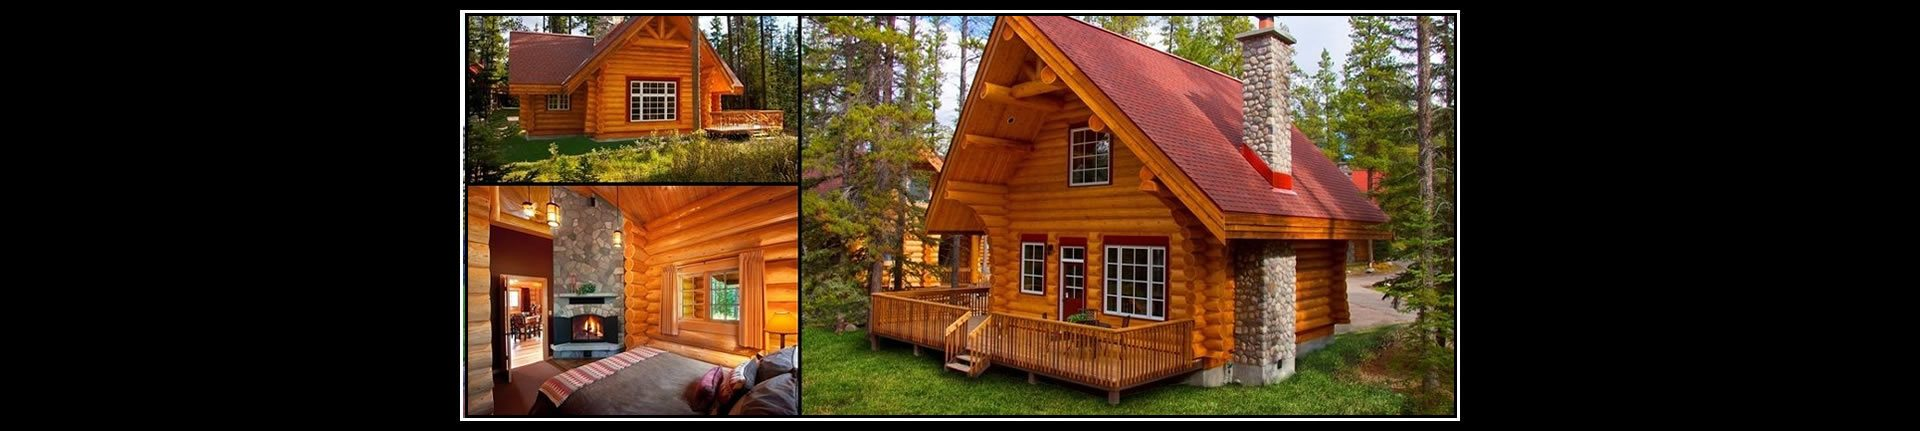 Slider_Image_log_cabins